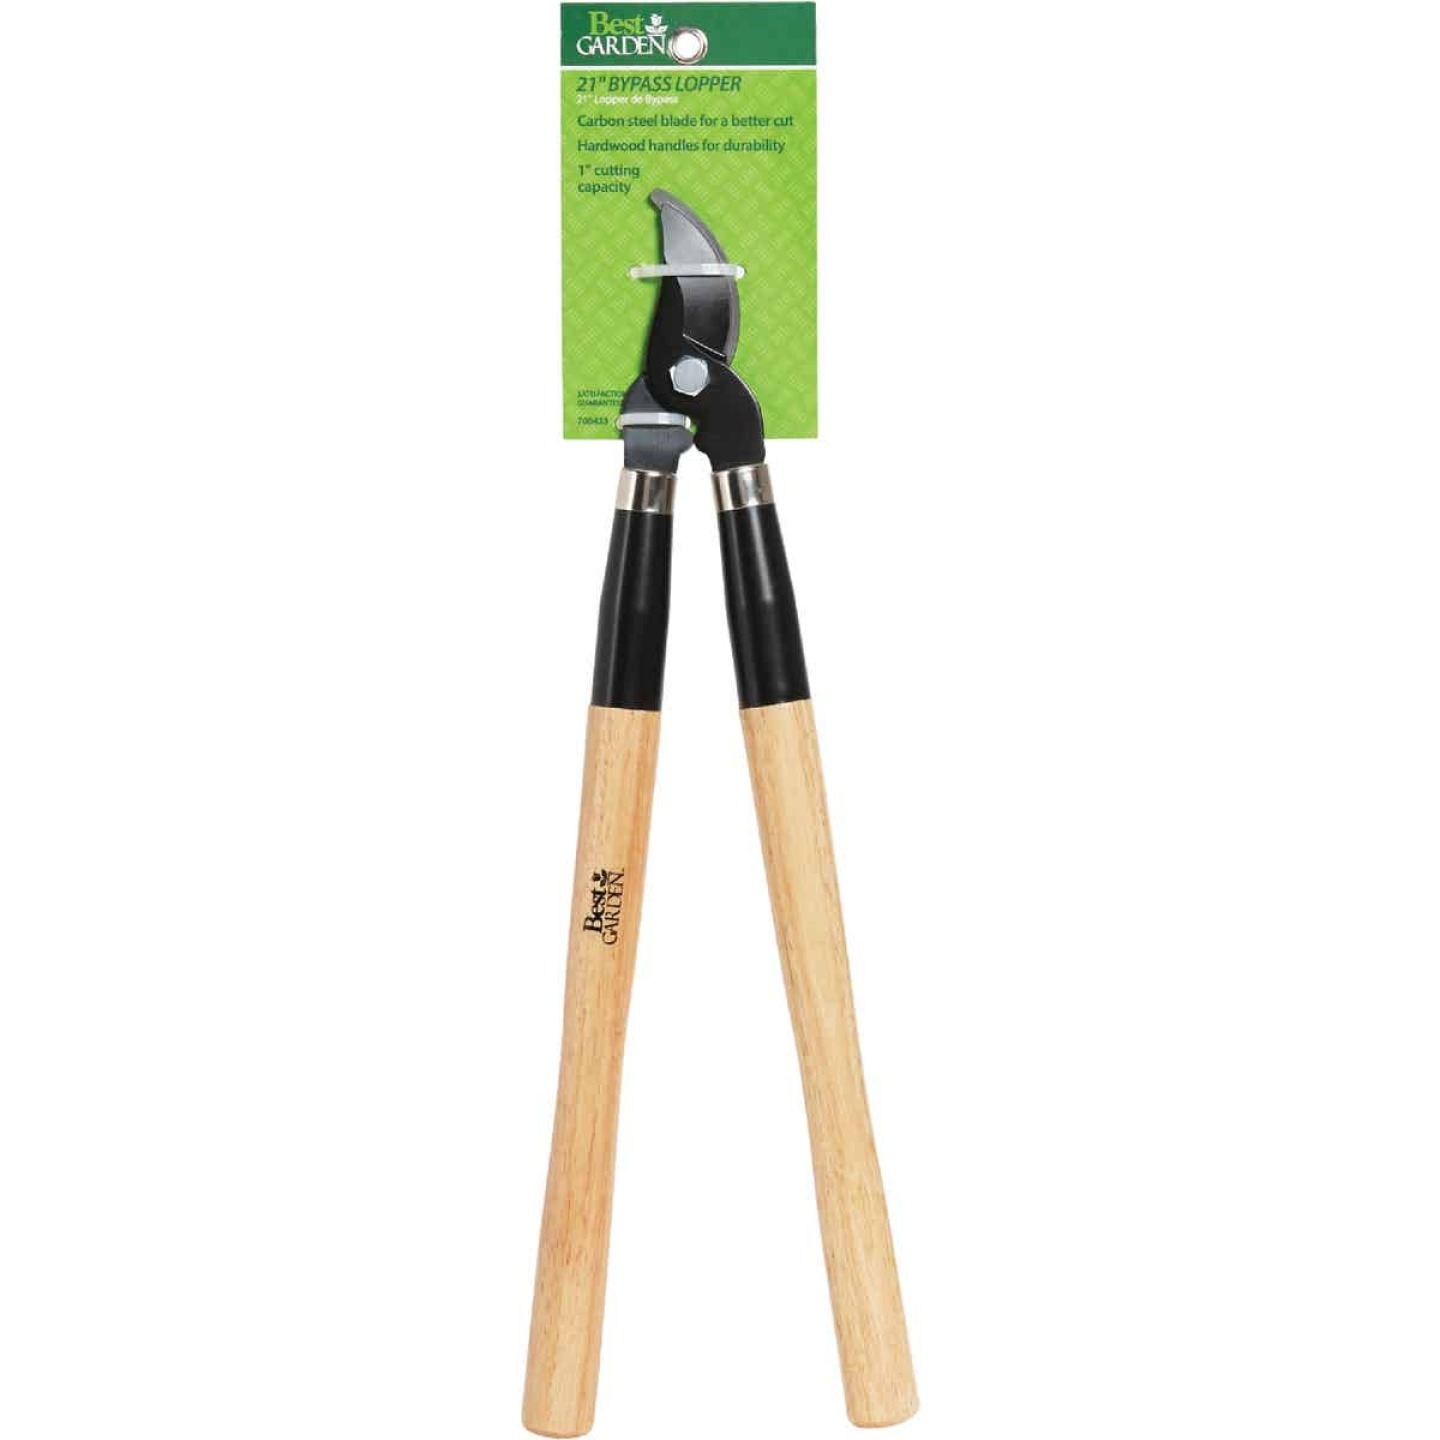 Best Garden 21 In. Wood Handle Bypass Lopper Image 2